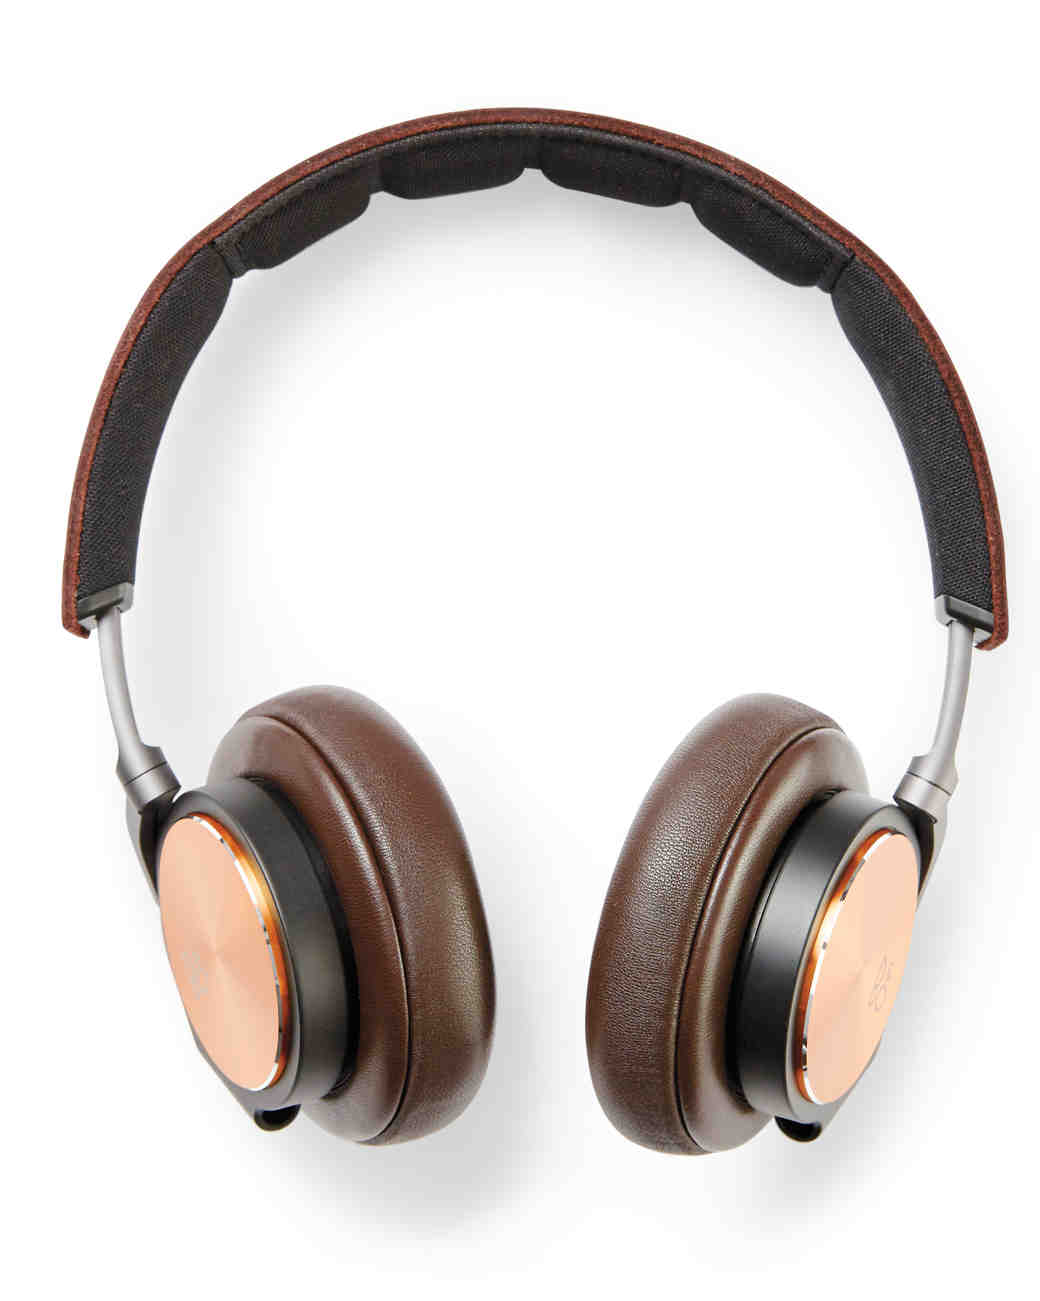 headphones-brown-031-d111574.jpg